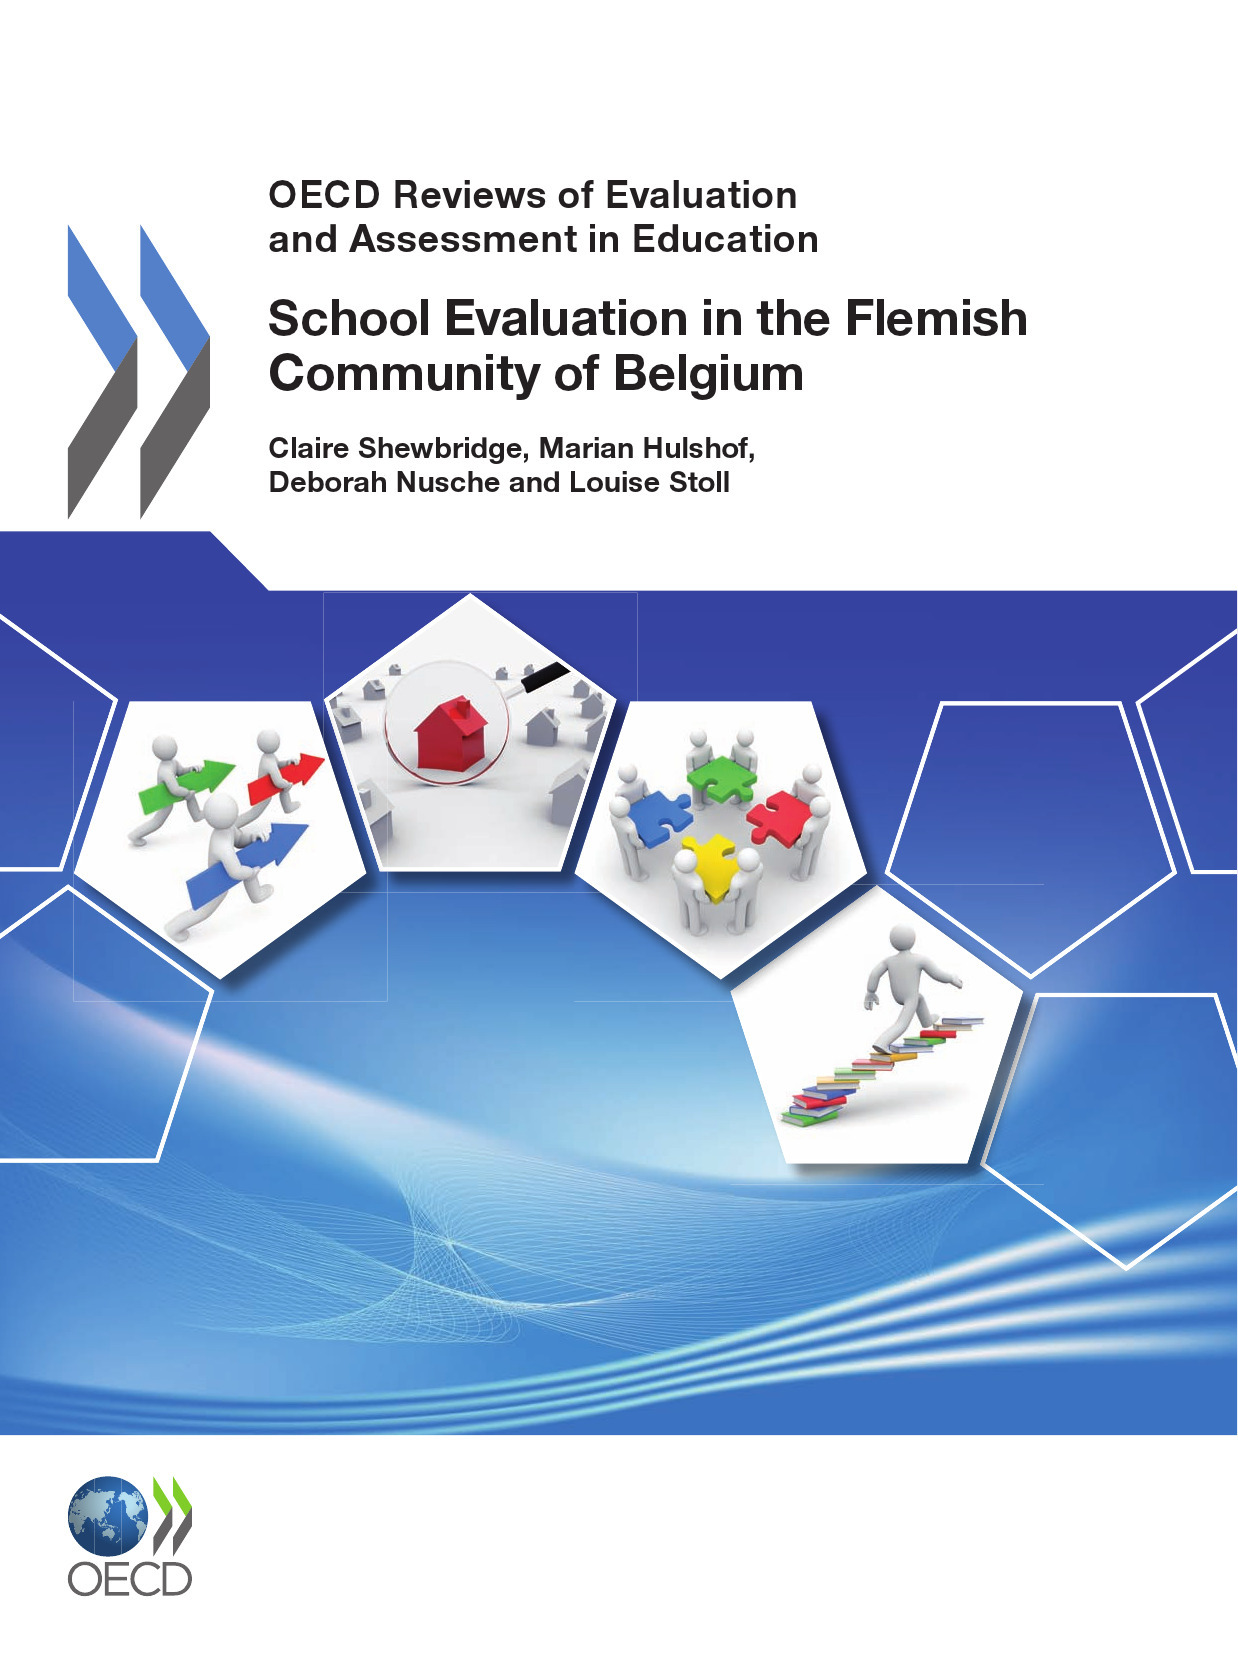 OECD Reviews of Evaluation and Assessment in Education: School Evaluation in the Flemish Community of Belgium 2011